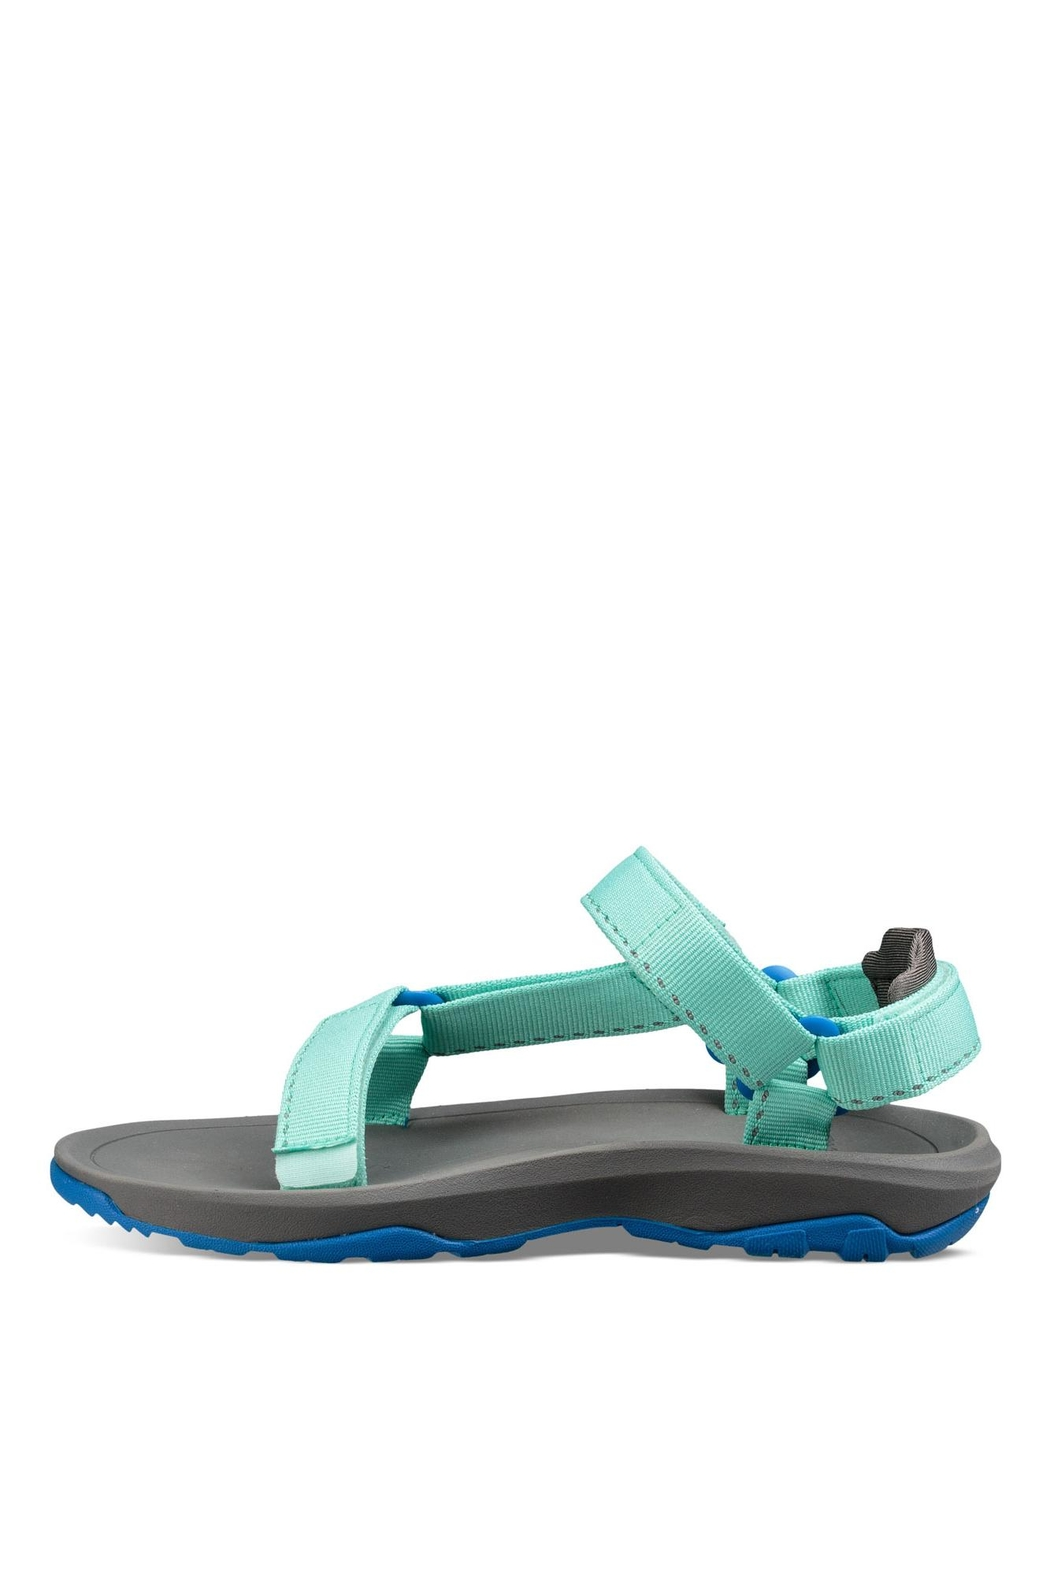 Teva Kid's Hurricane Xlt2 - Main Image